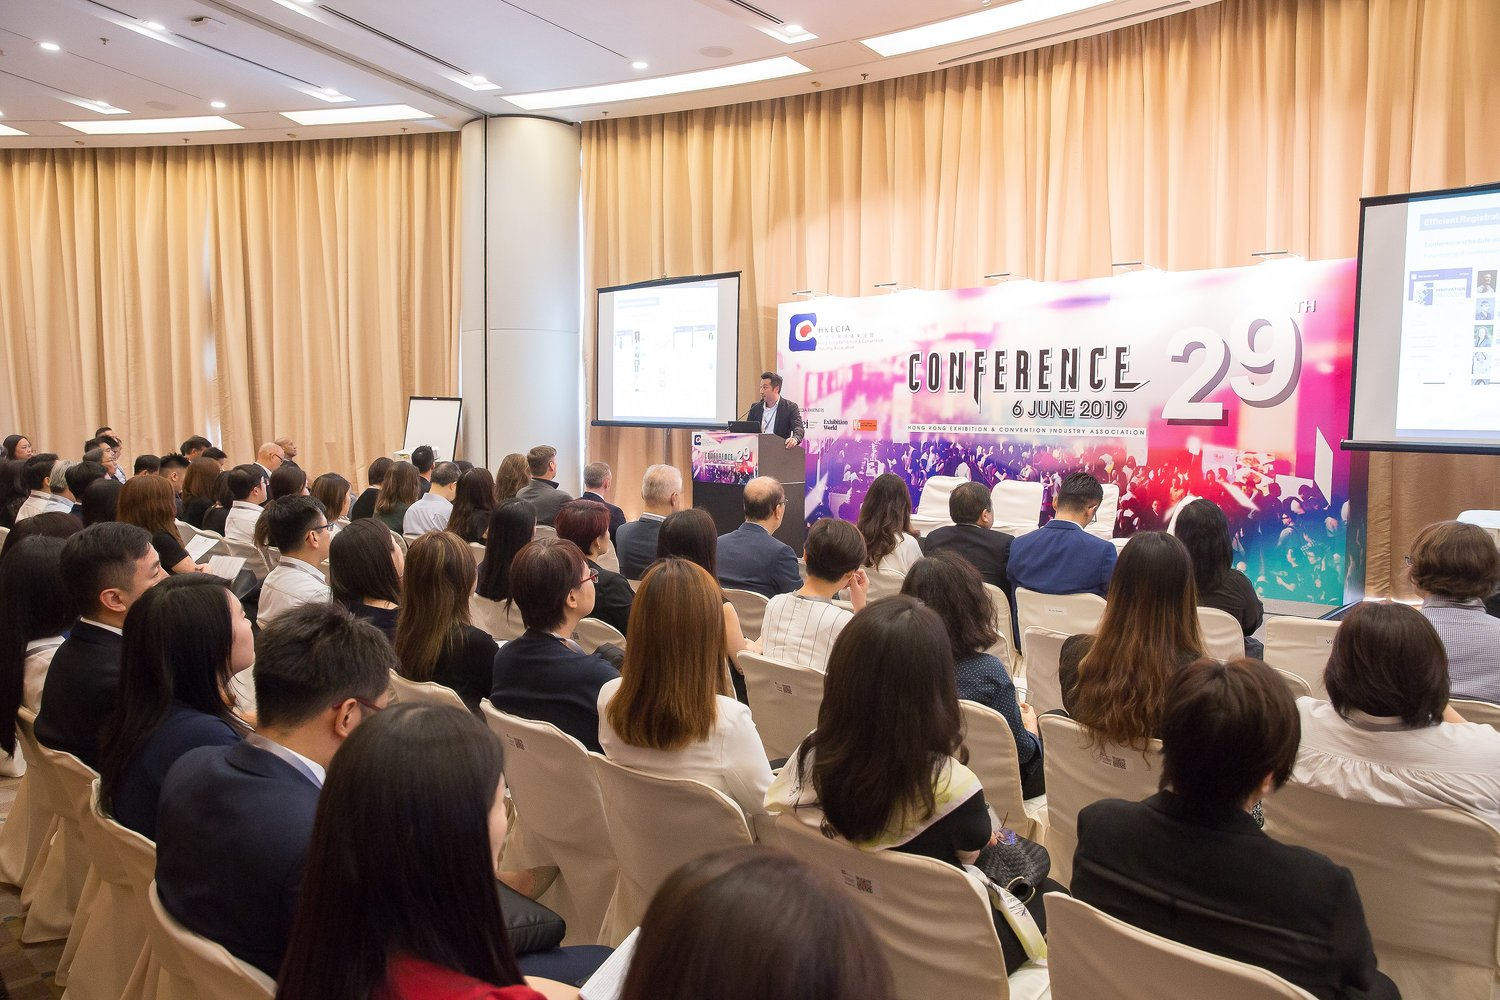 rsz 2 over 160 participants attended the hkecia annual conference on 6 june